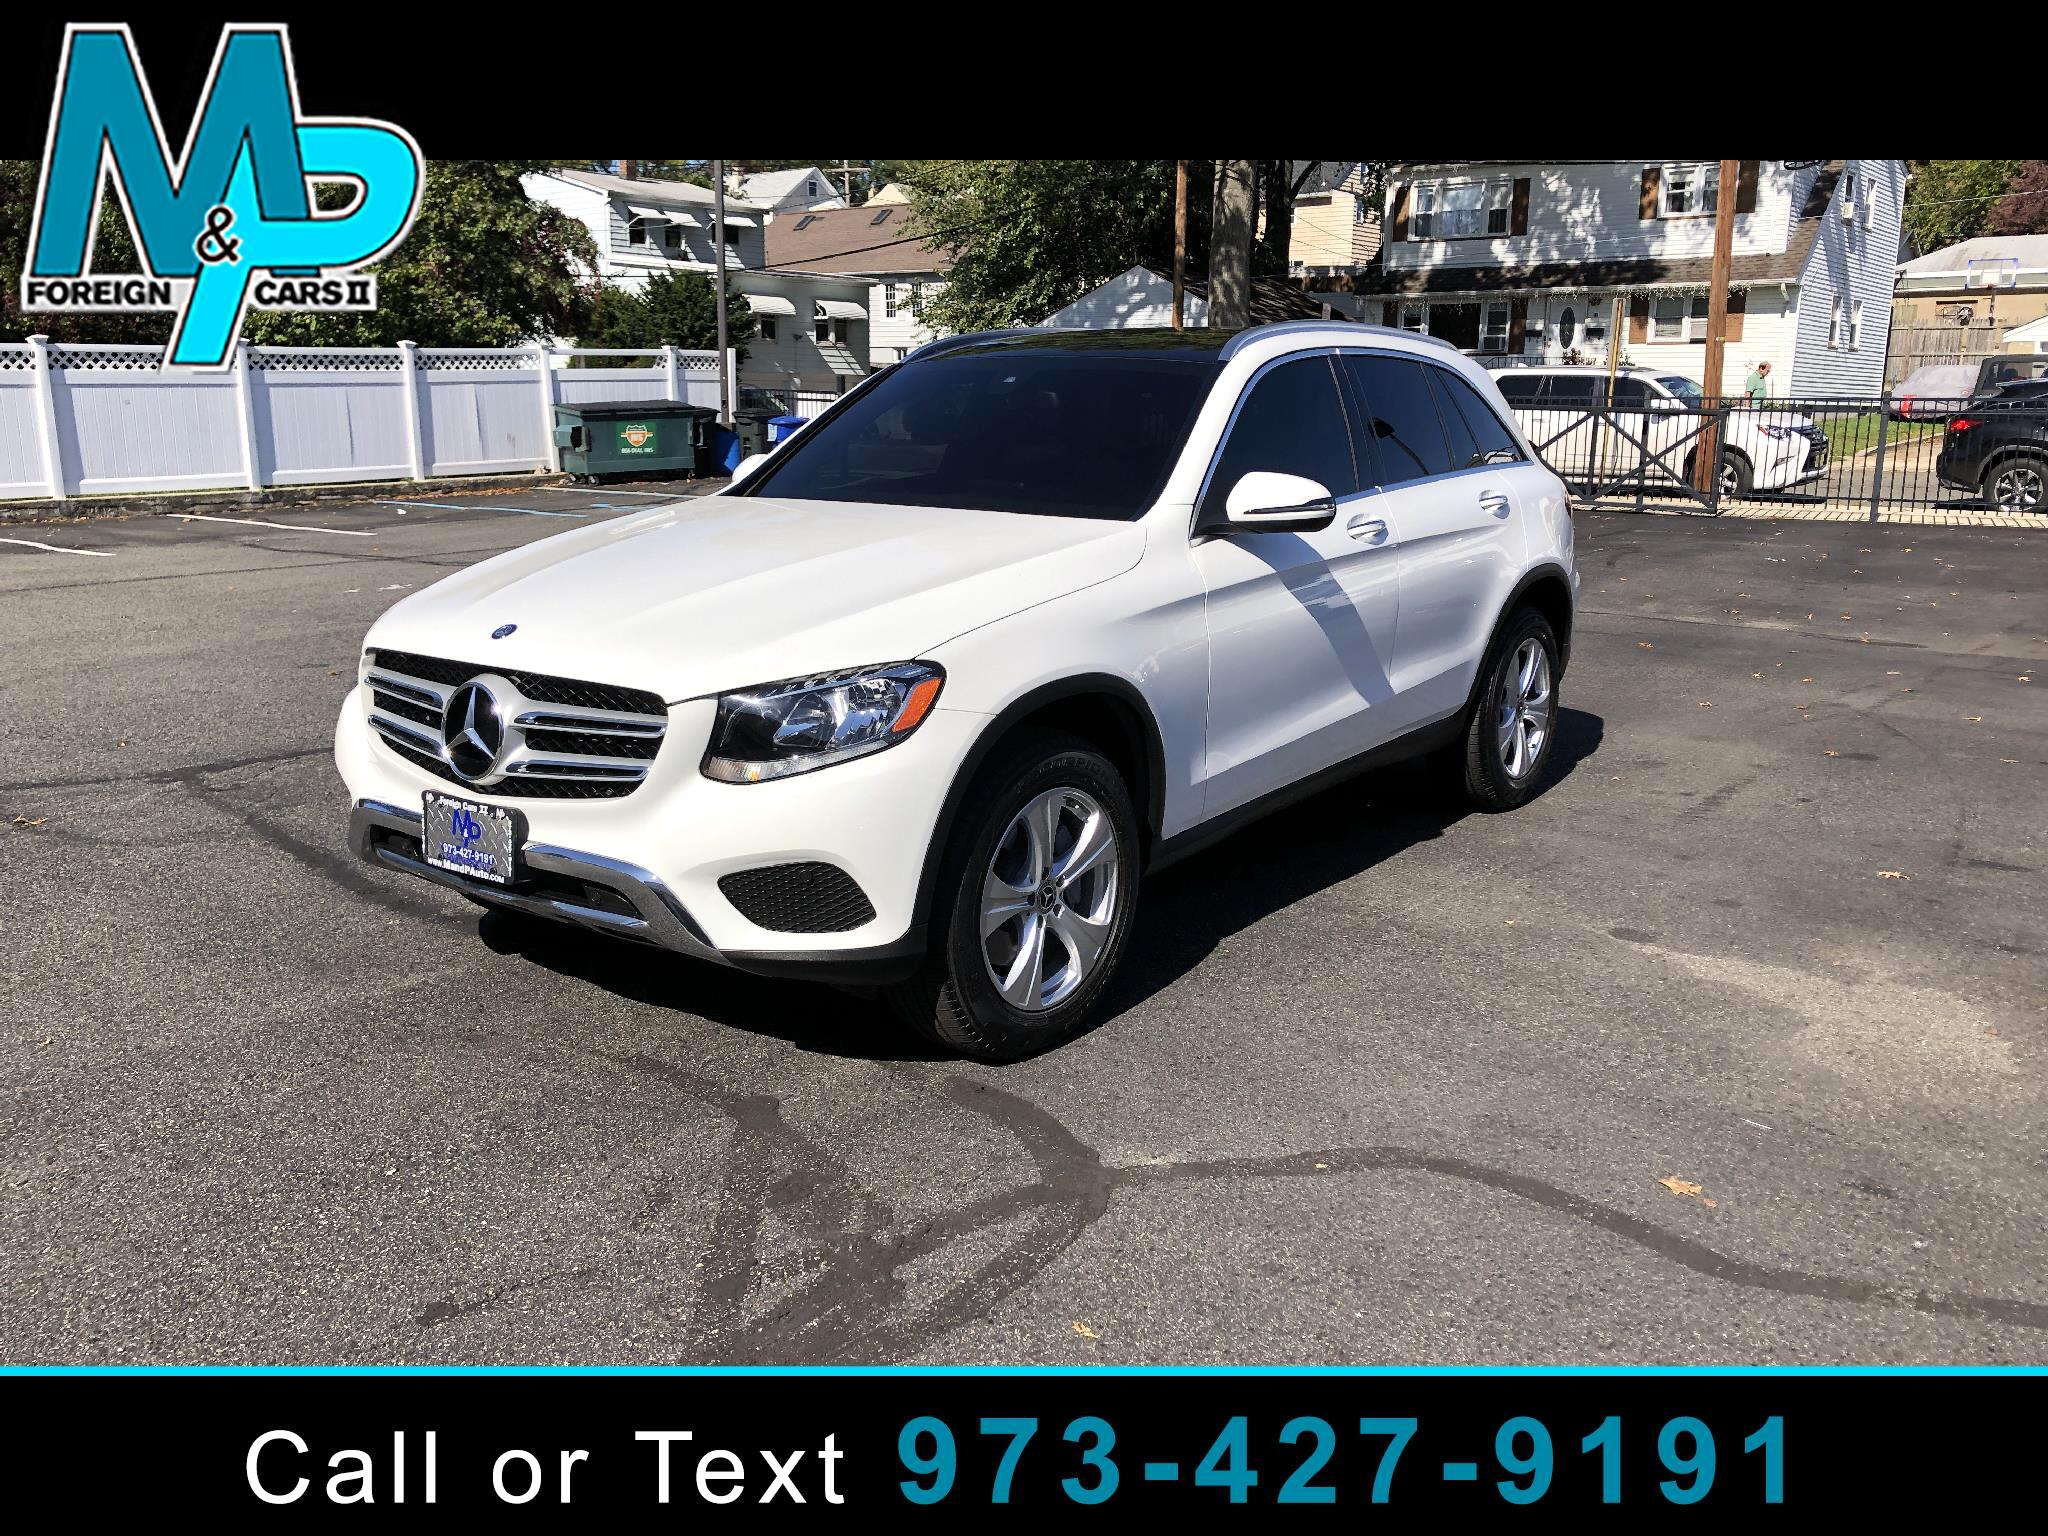 Mercedes-Benz GLC GLC 300 4MATIC SUV 2017